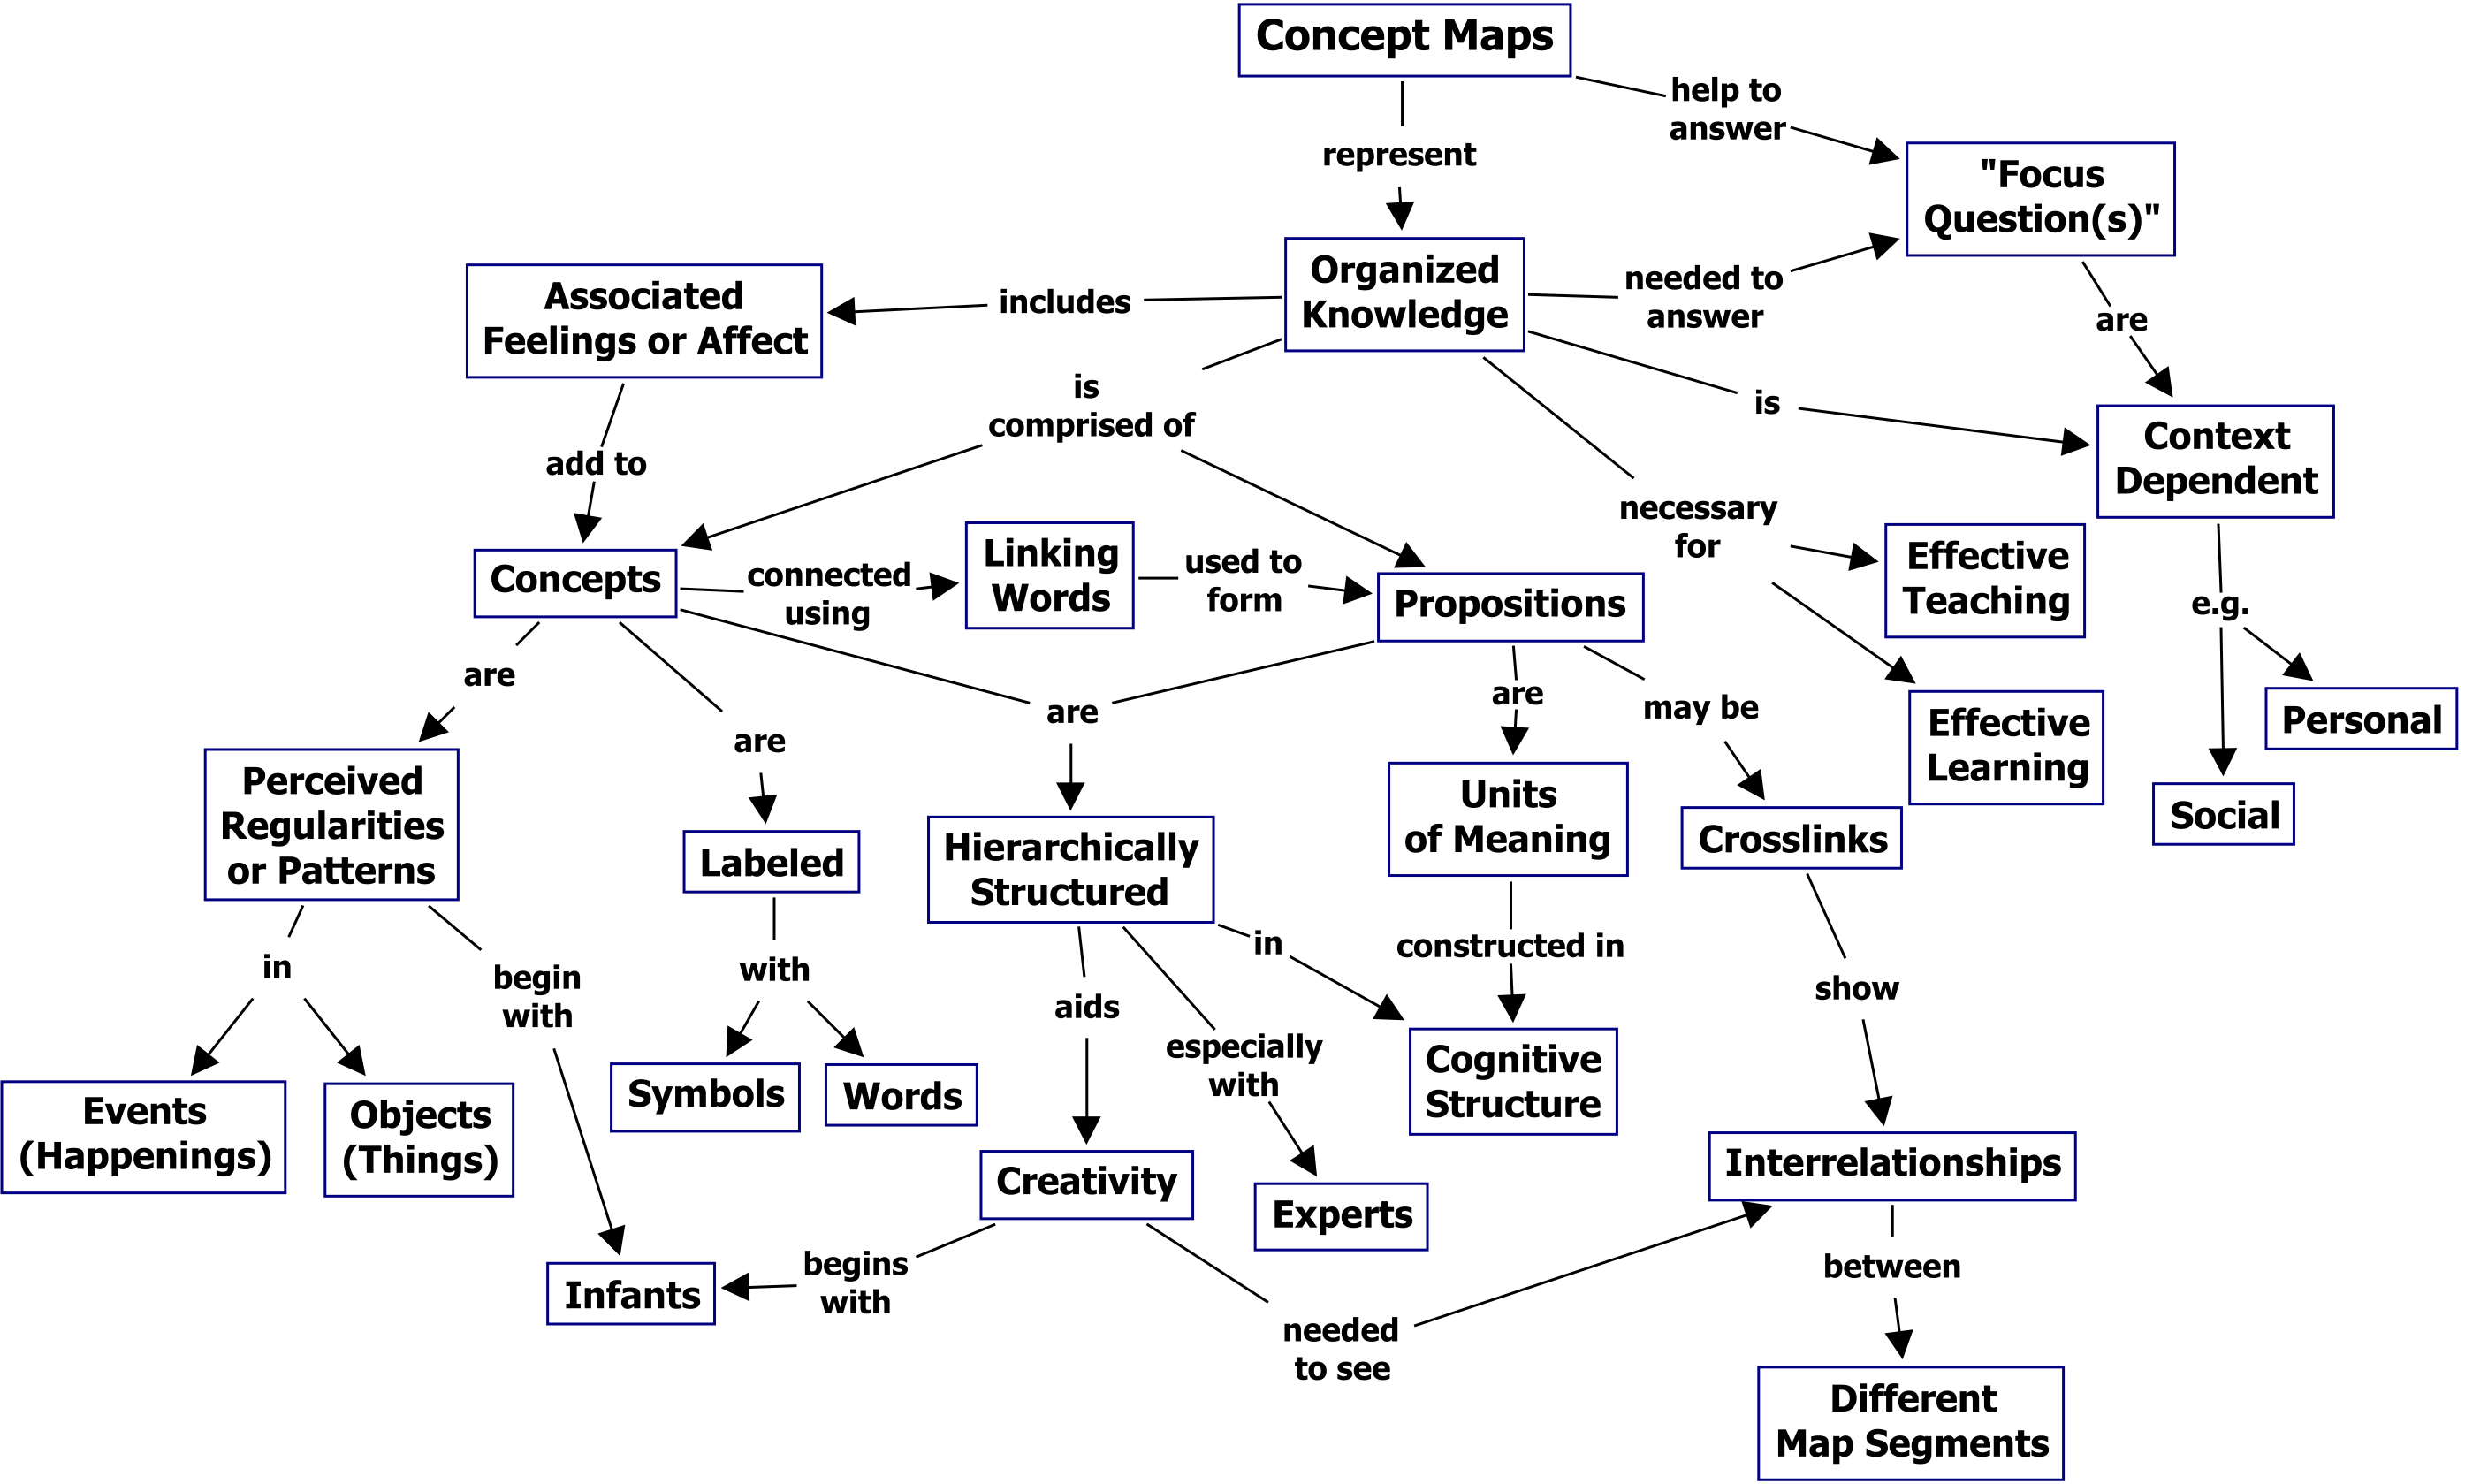 Figure 1. A concept map showing the key features of concept maps.